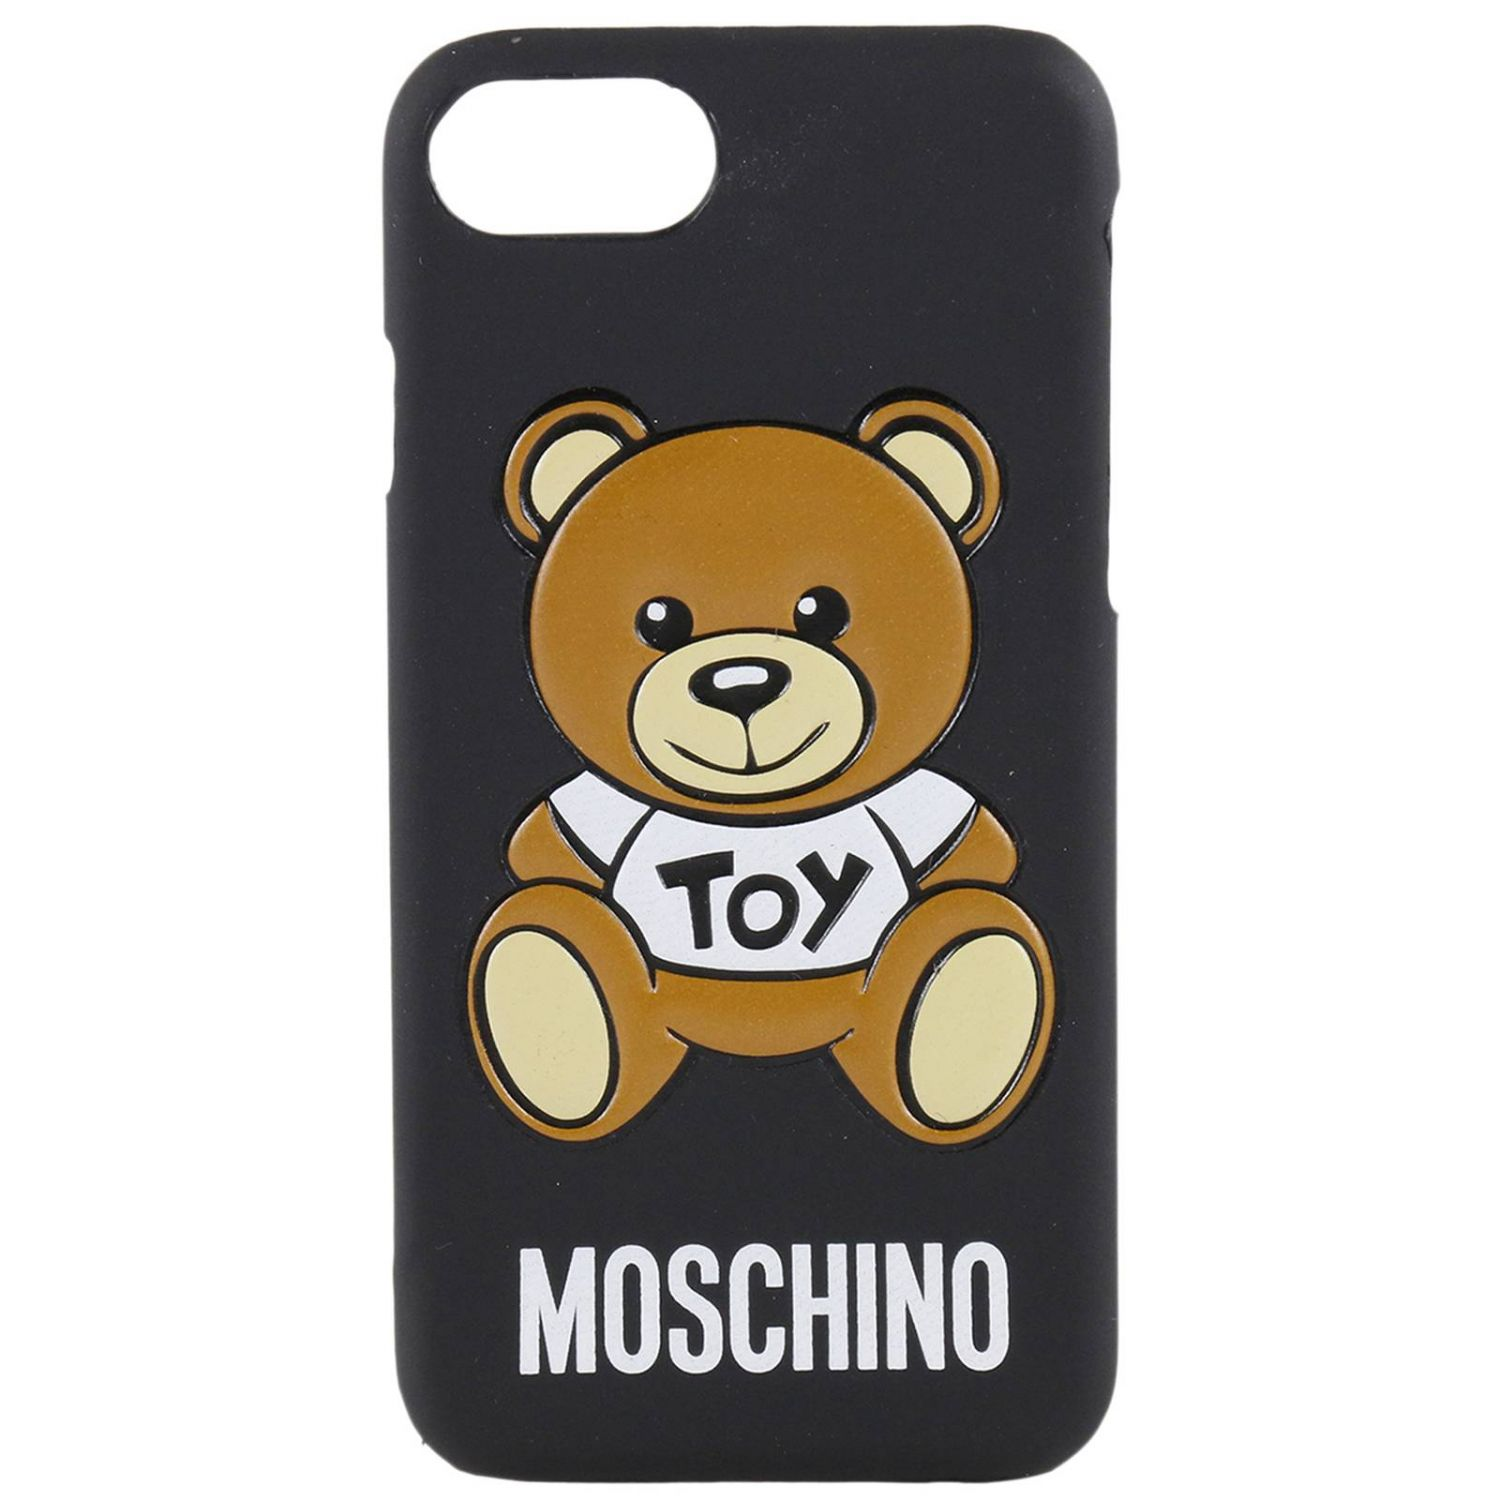 moschino cover iphone 6s donna